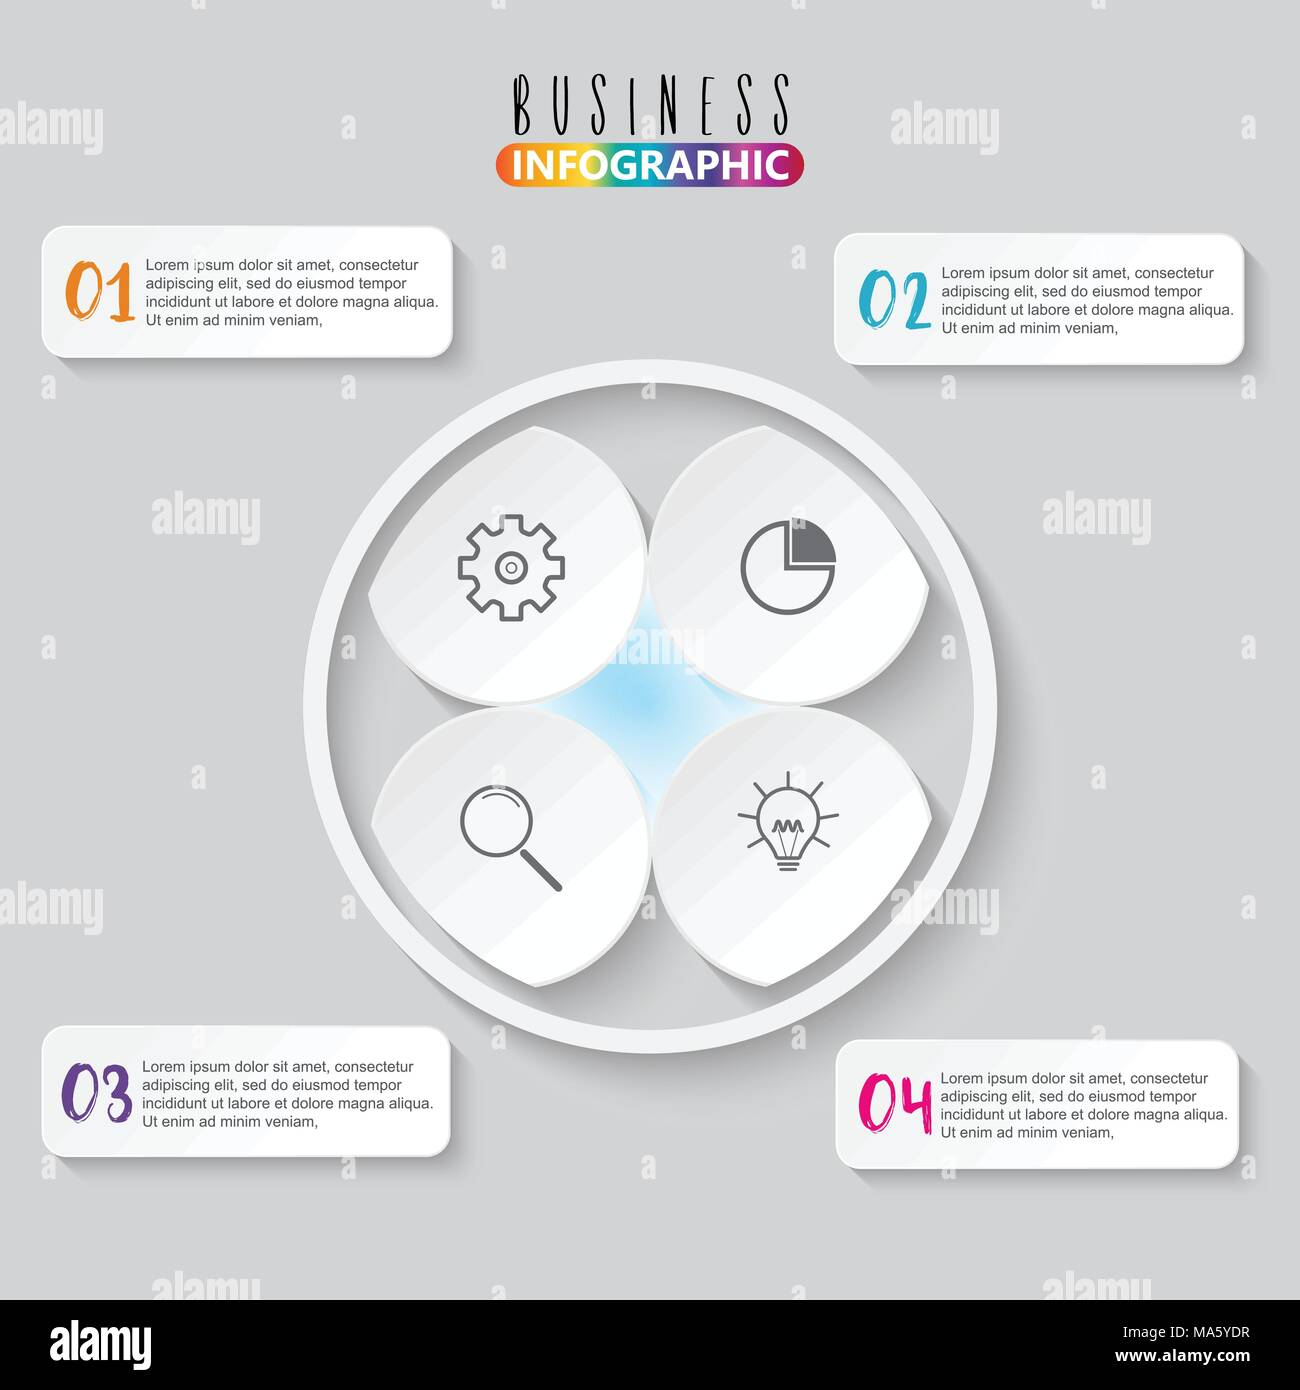 Infographic element with four options - Stock Image